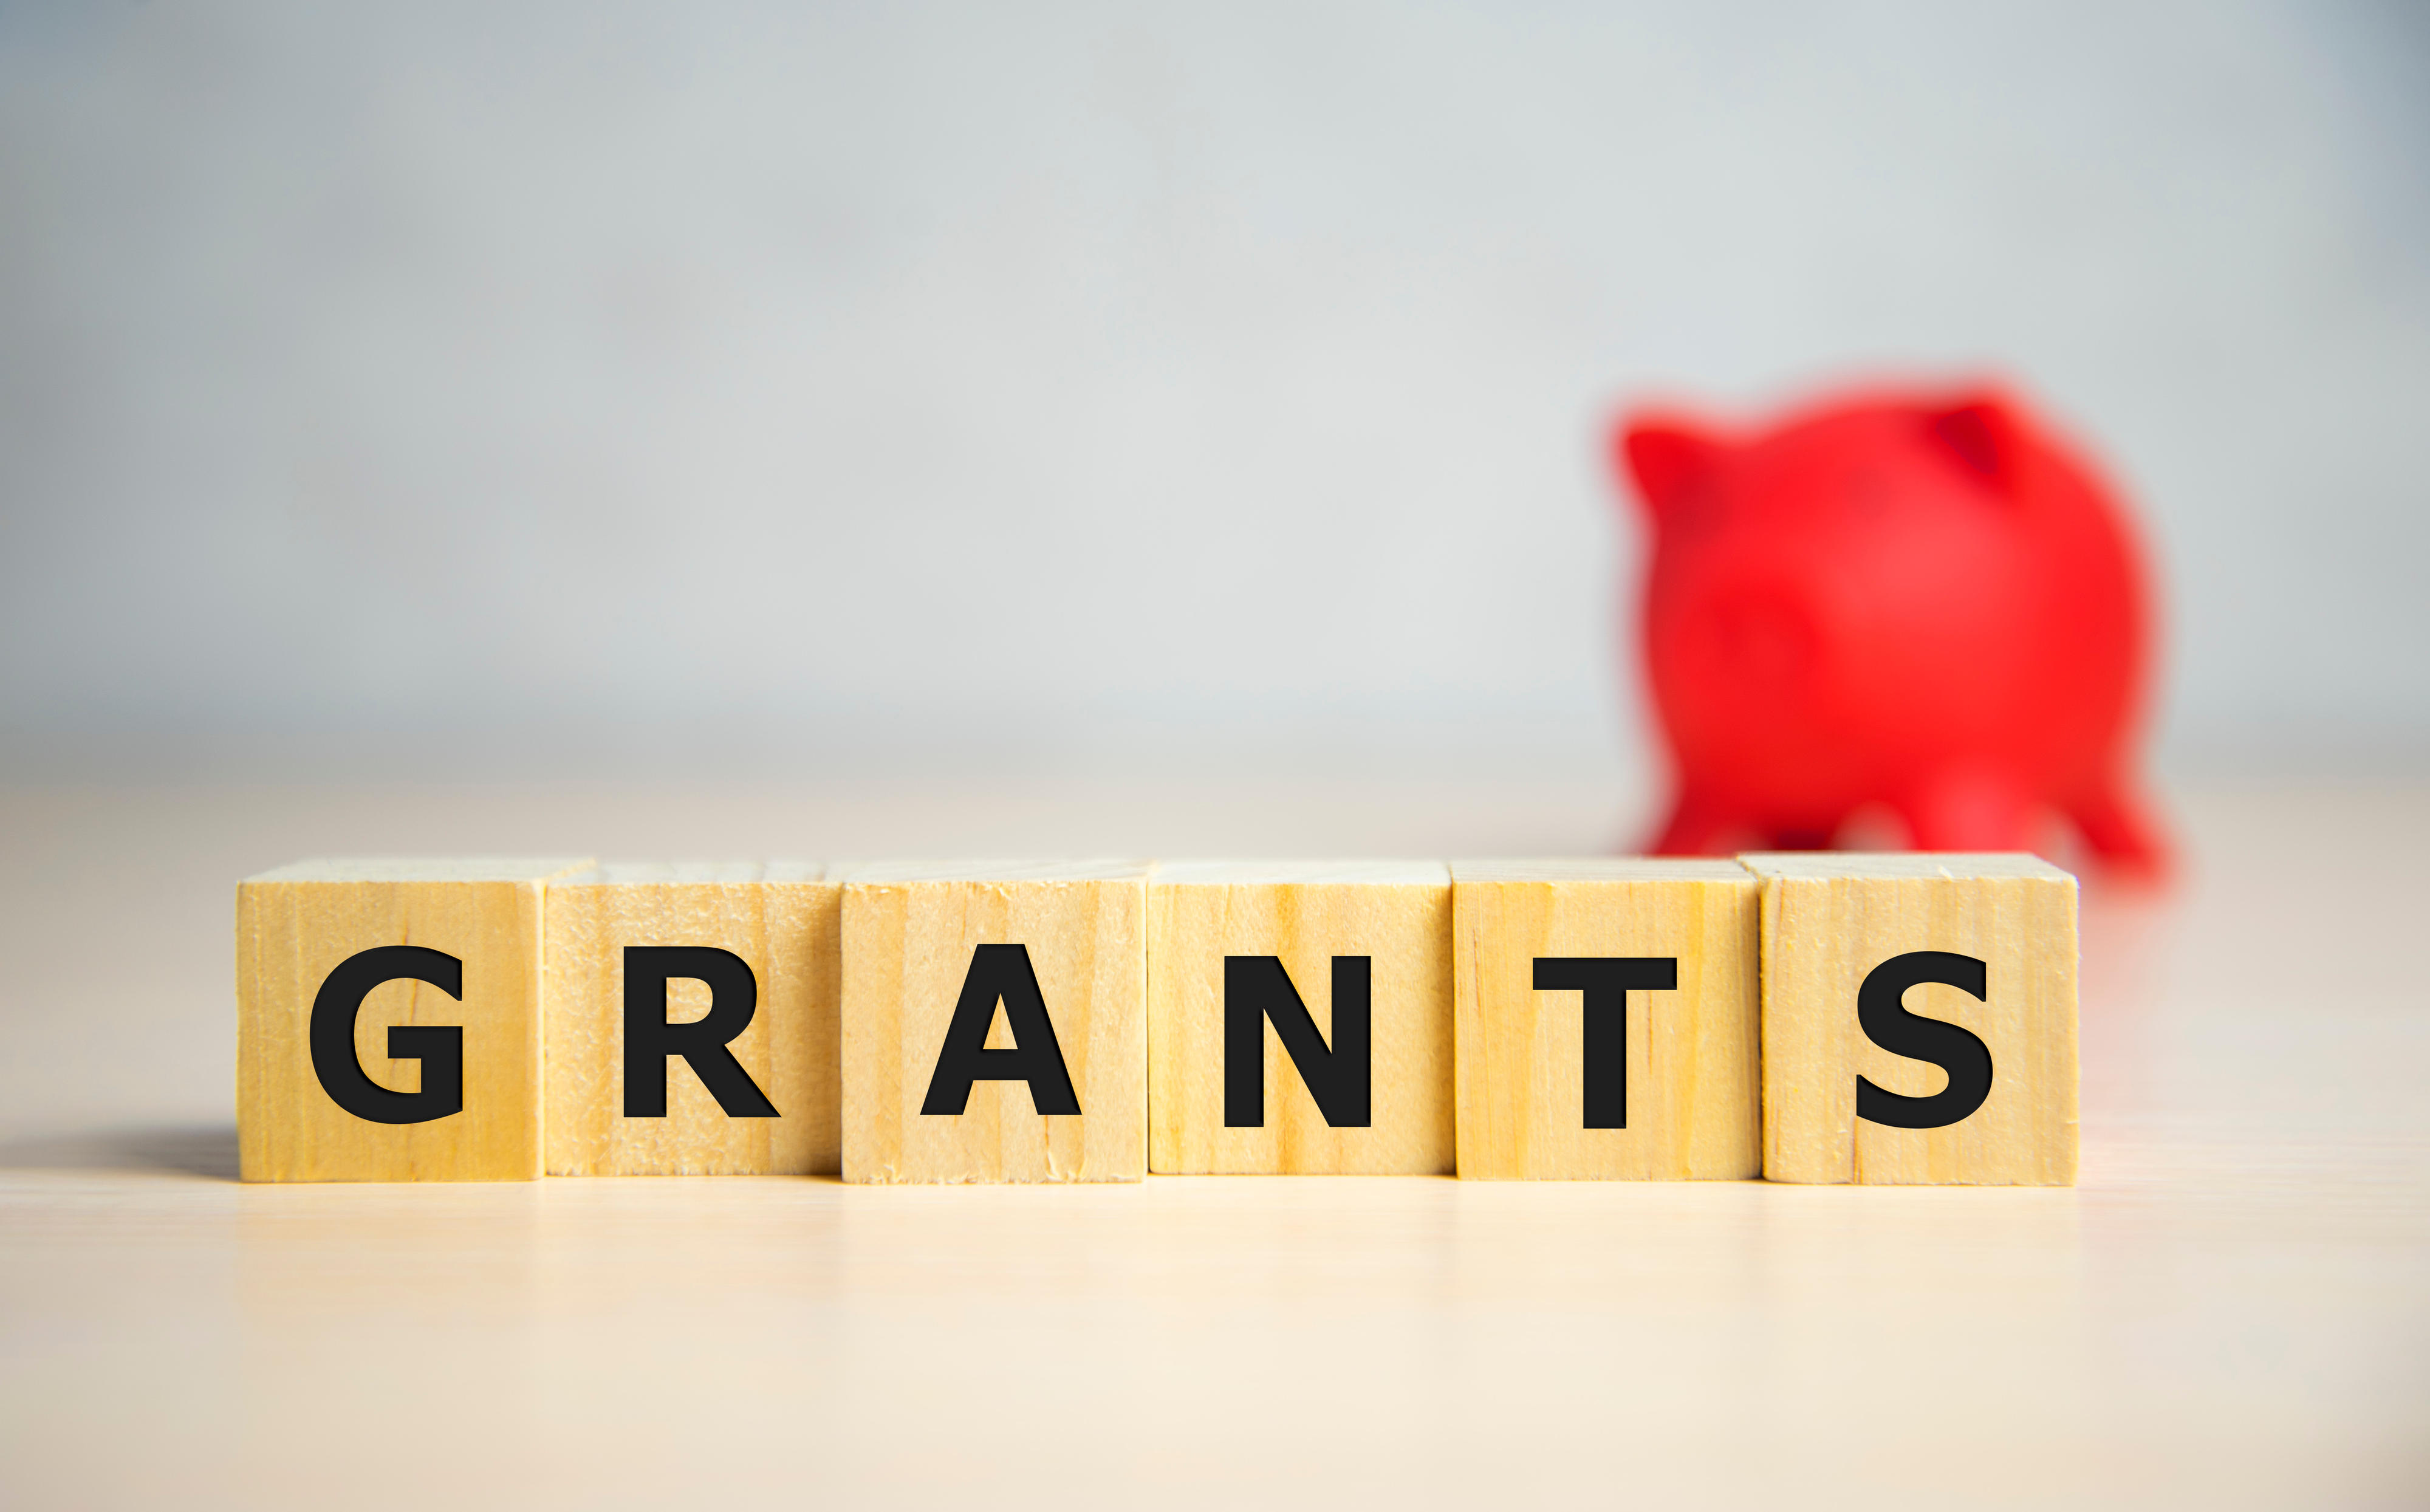 Grants of up to £1,000 per year for Louth projects